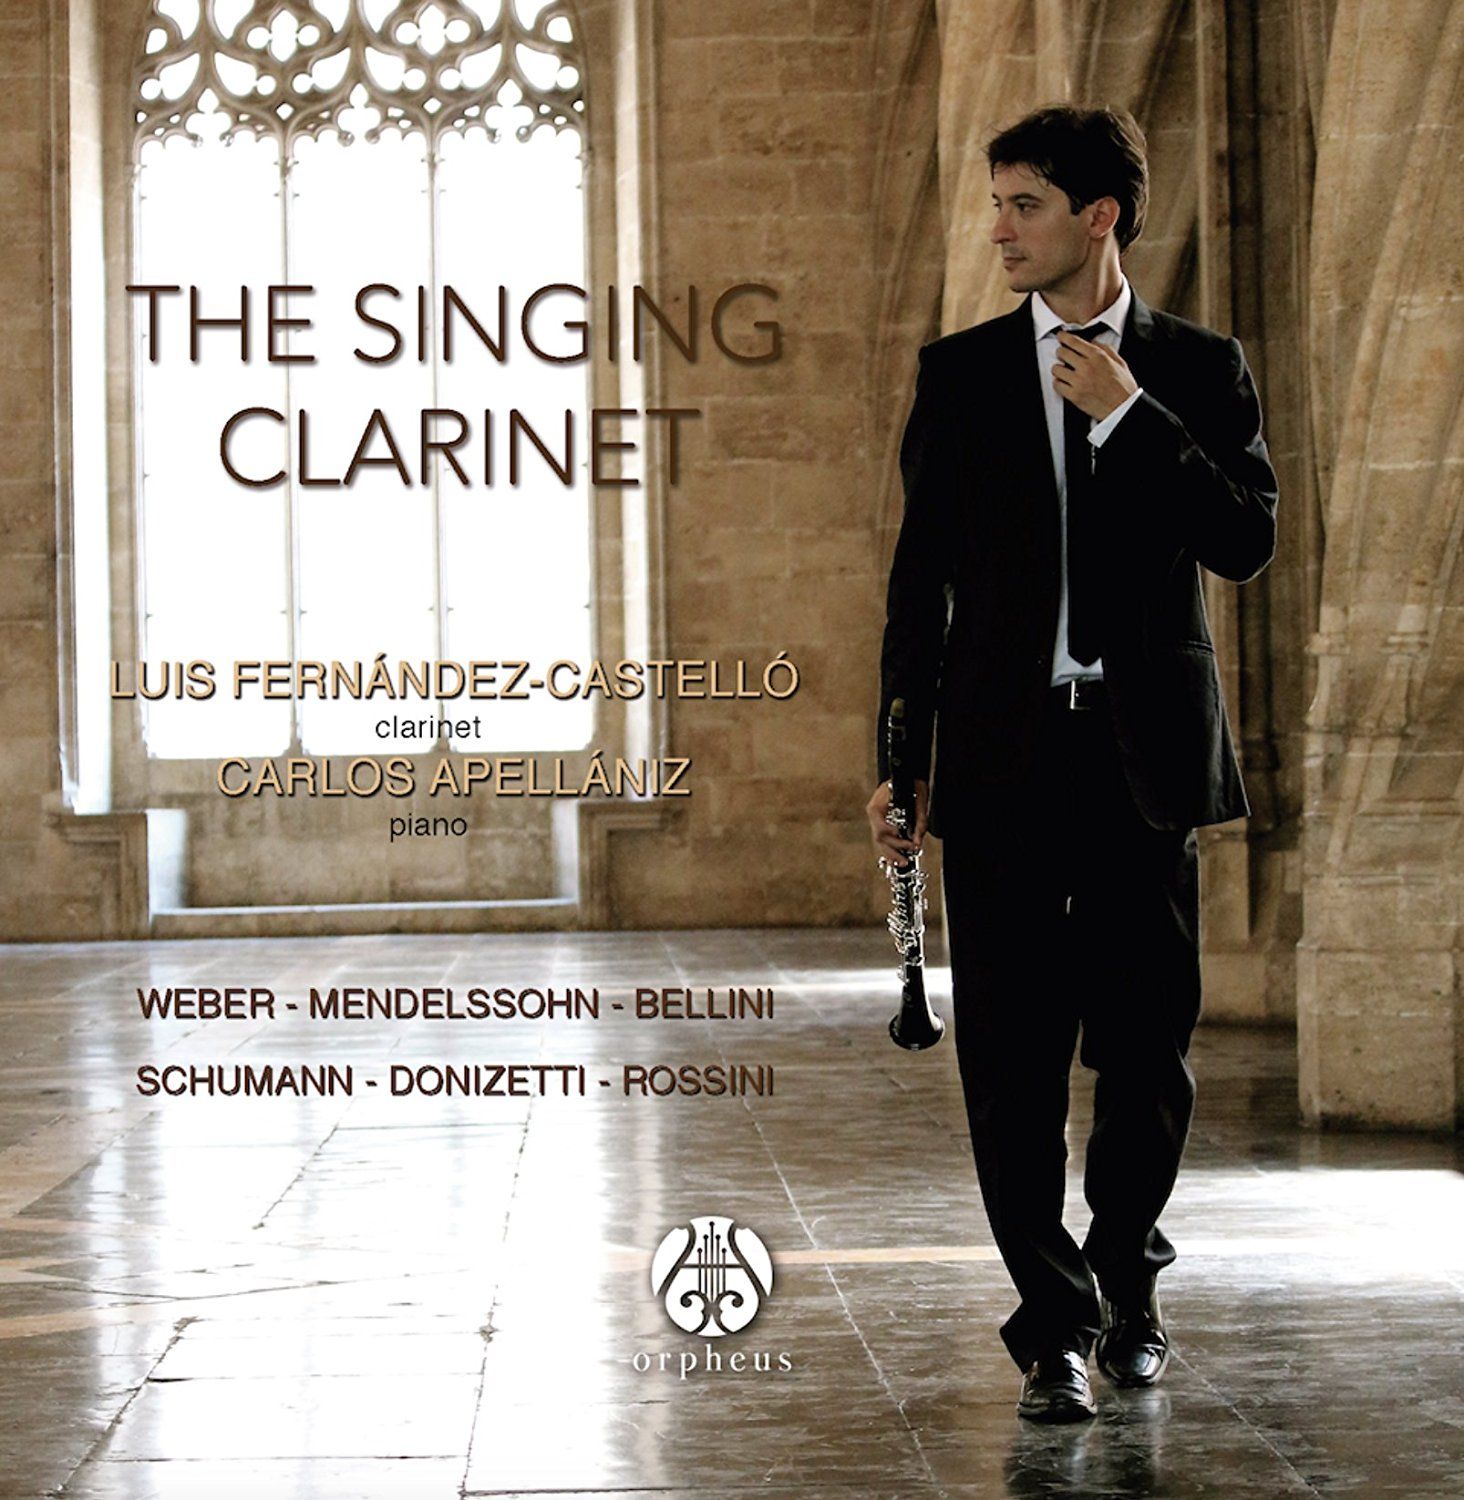 The singing clarinet: el hermoso canto del clarinete de Fernández-Castelló